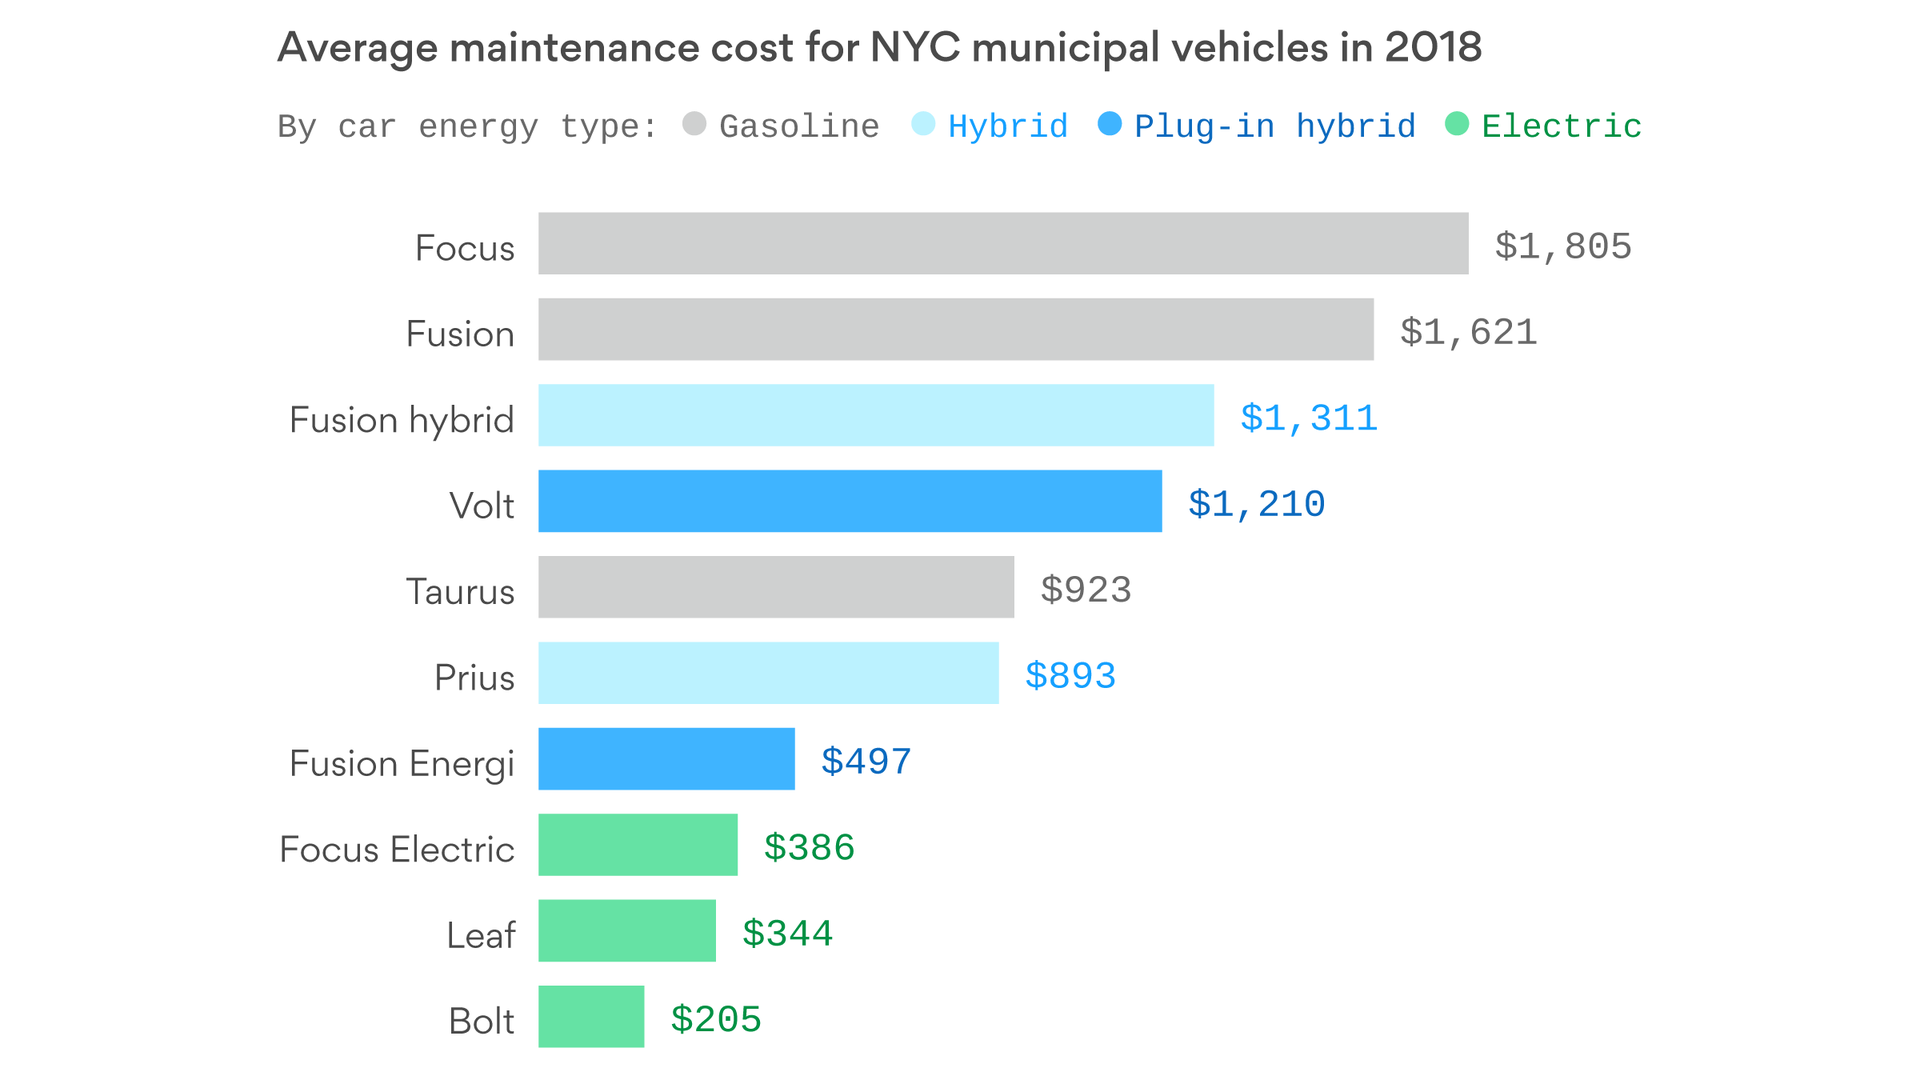 Electric vehicles maintenance costs in NYC run lower than gas-powered cars